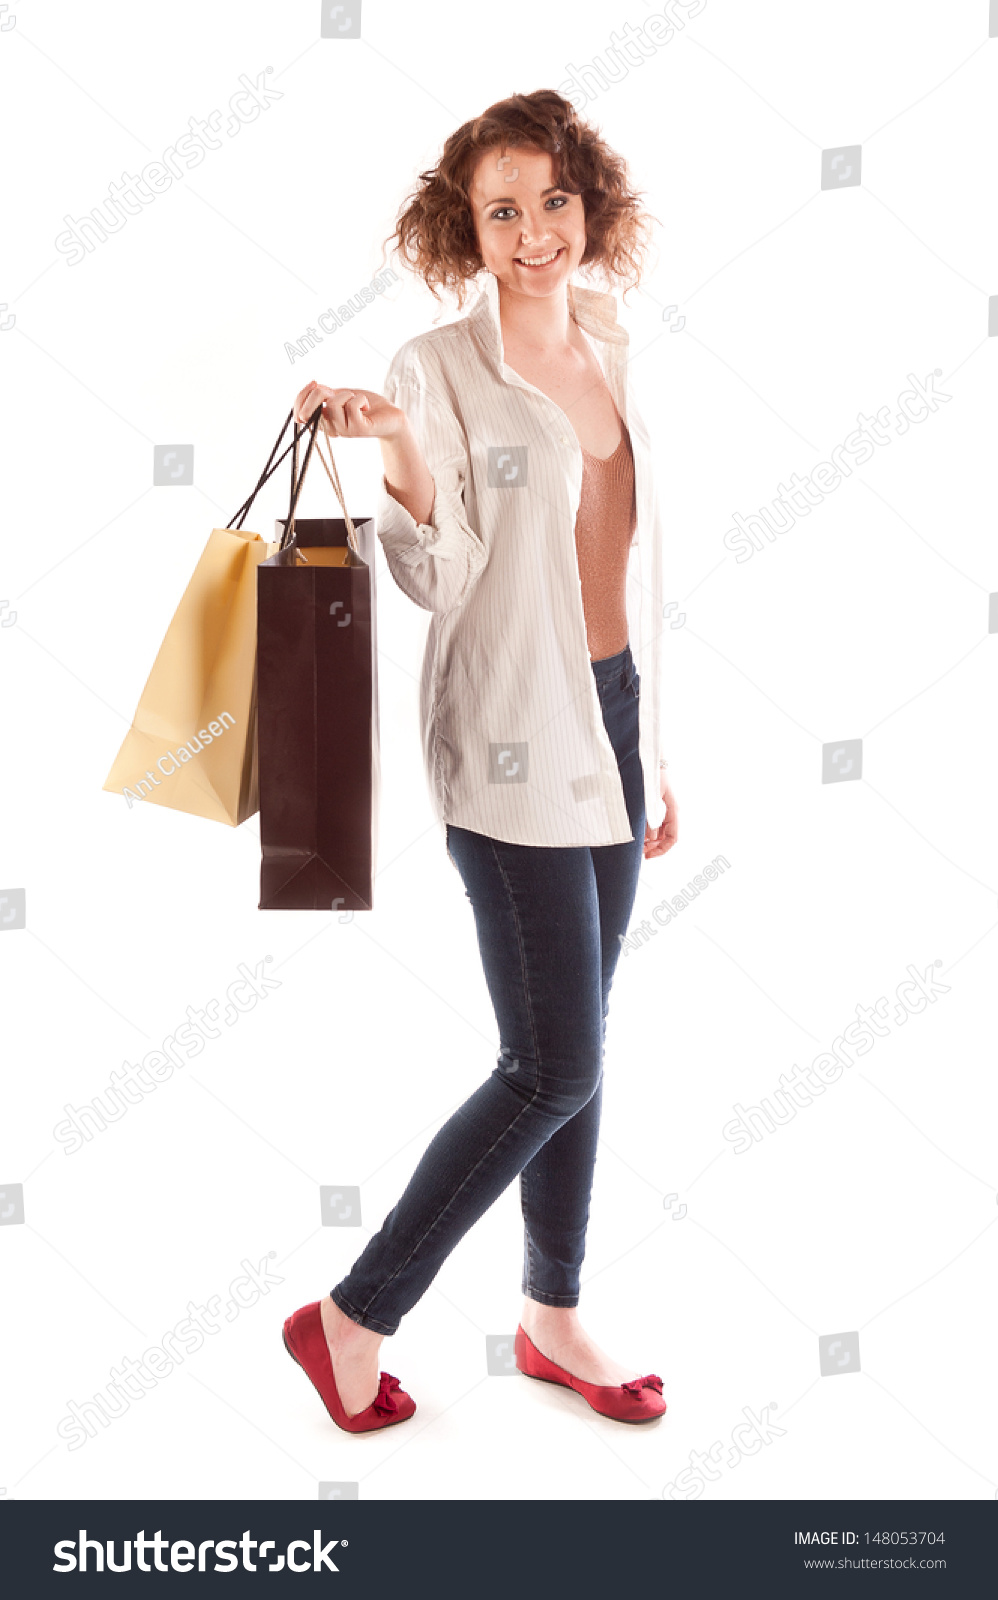 Woman posing with shopping bags isolated on white background full - Young Woman Posing With Shopping Bags Isolated On White Background